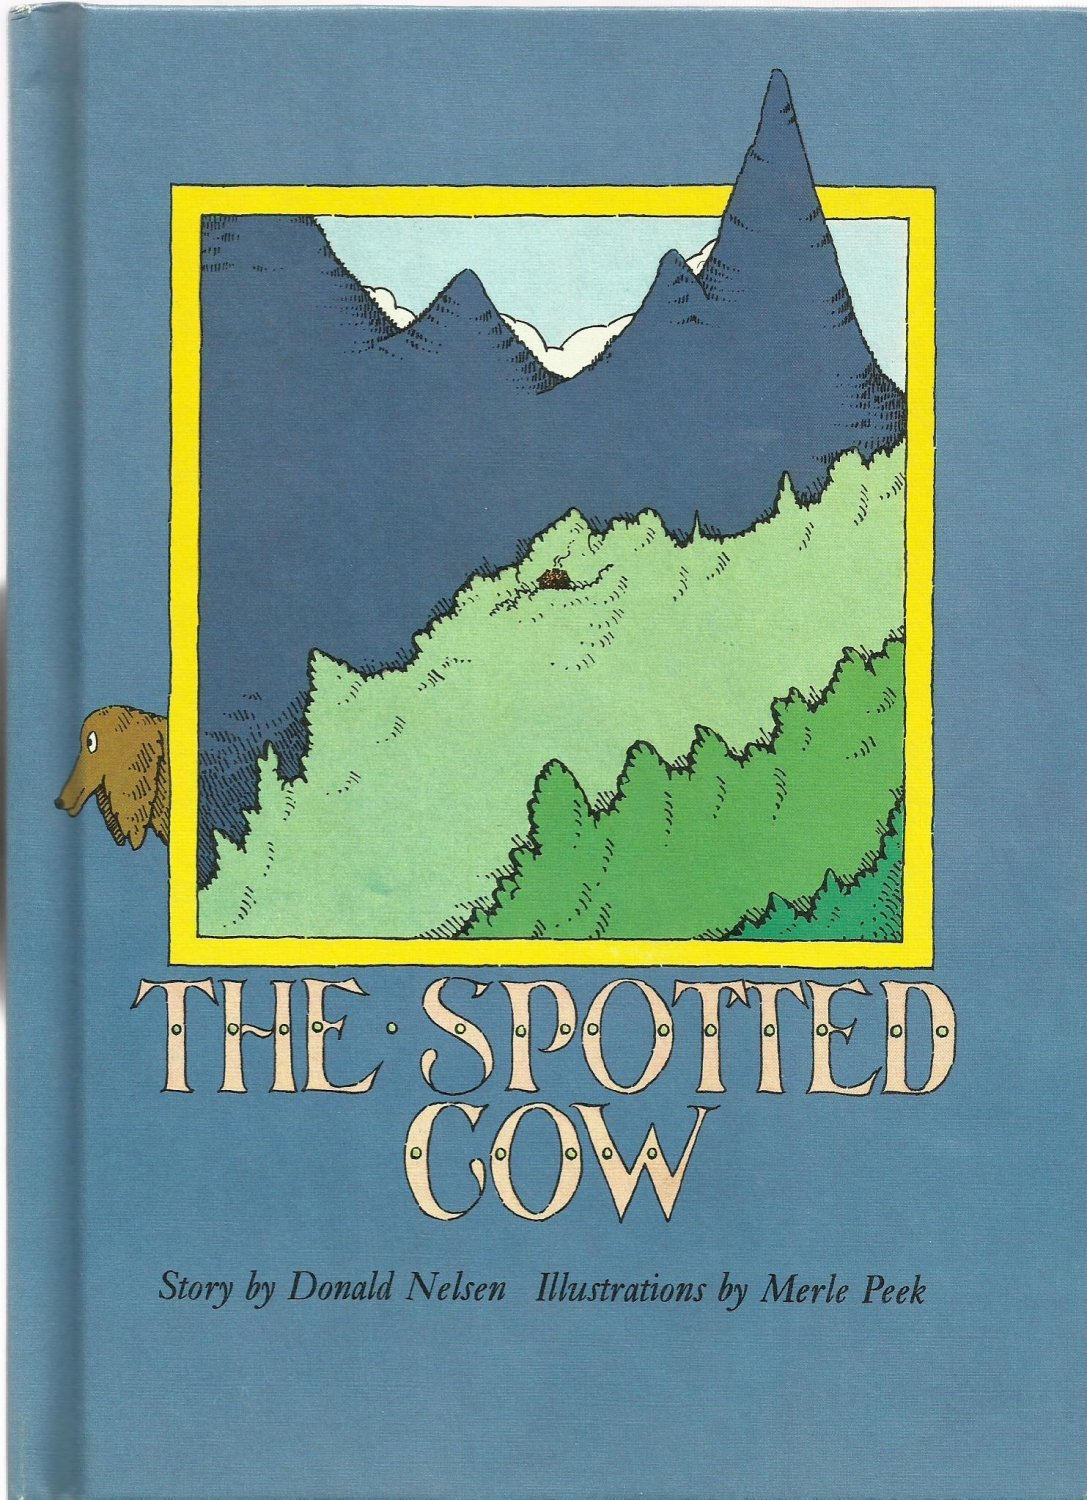 Vintage Children's Parents' Magazine Book - THE SPOTTED COW 1973